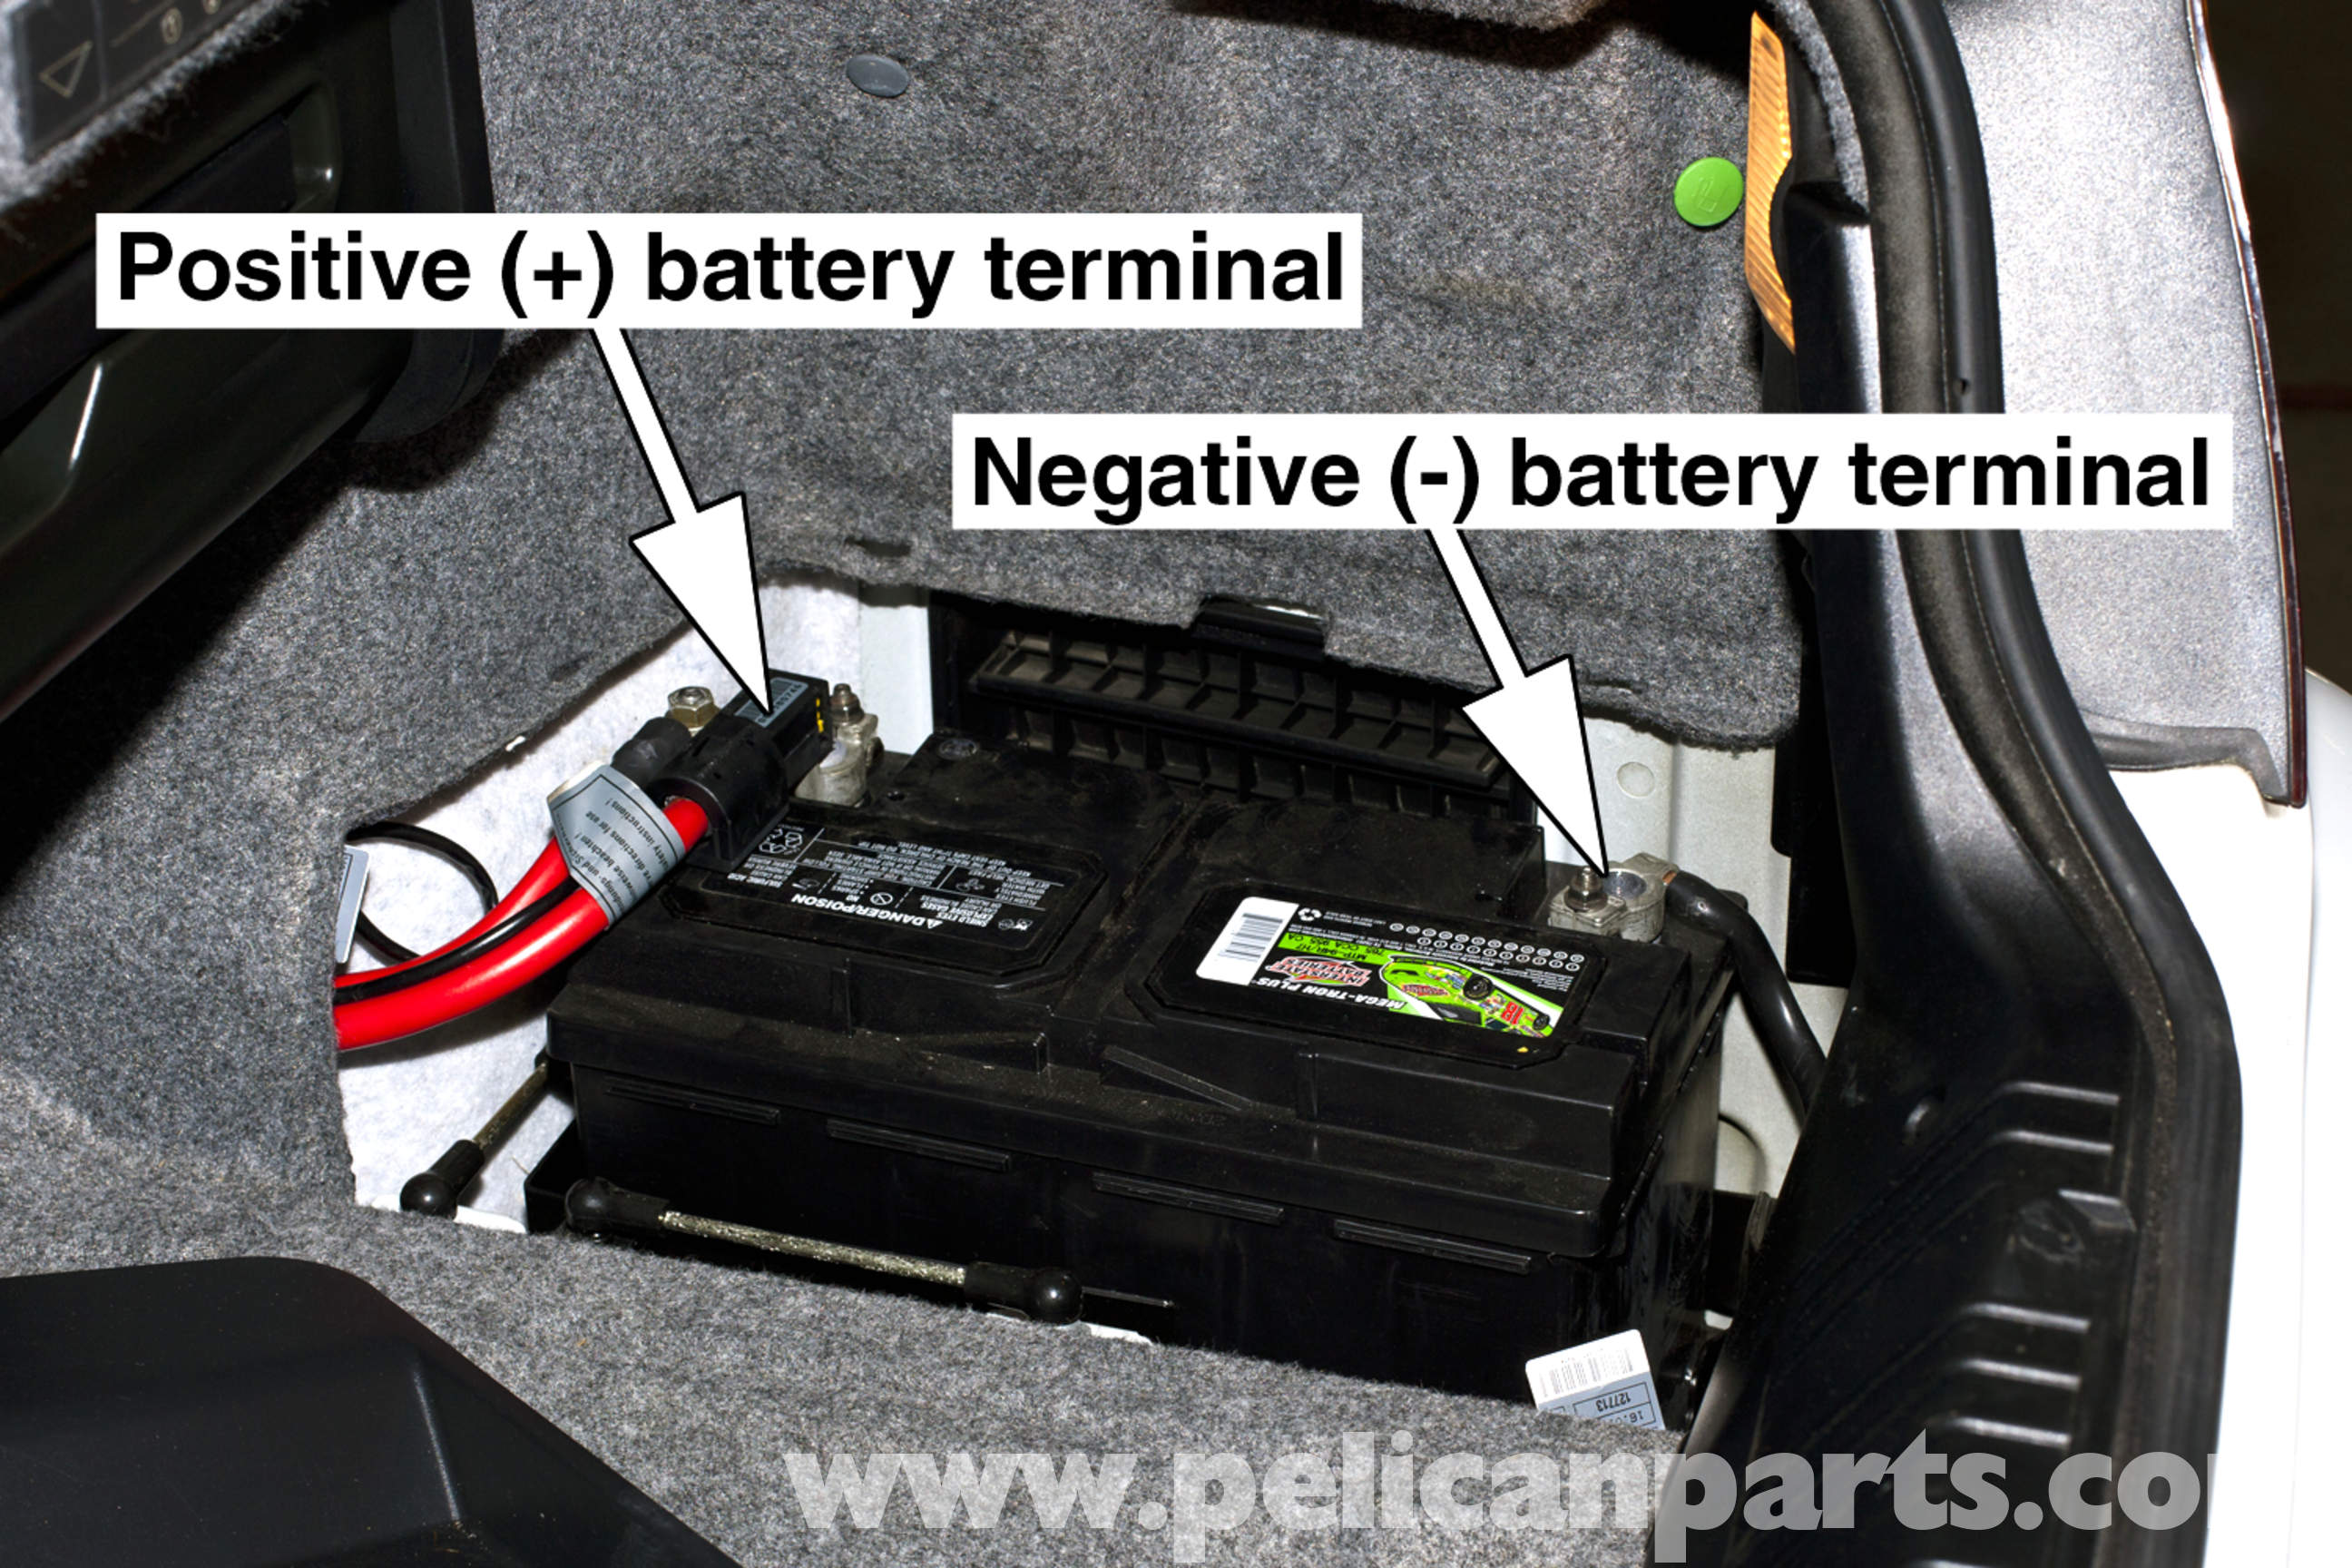 Bmw E46 Battery Replacement And Connection Notes 325i 2001 Dome Light Wiring Diagram Vw Bug Large Image Extra